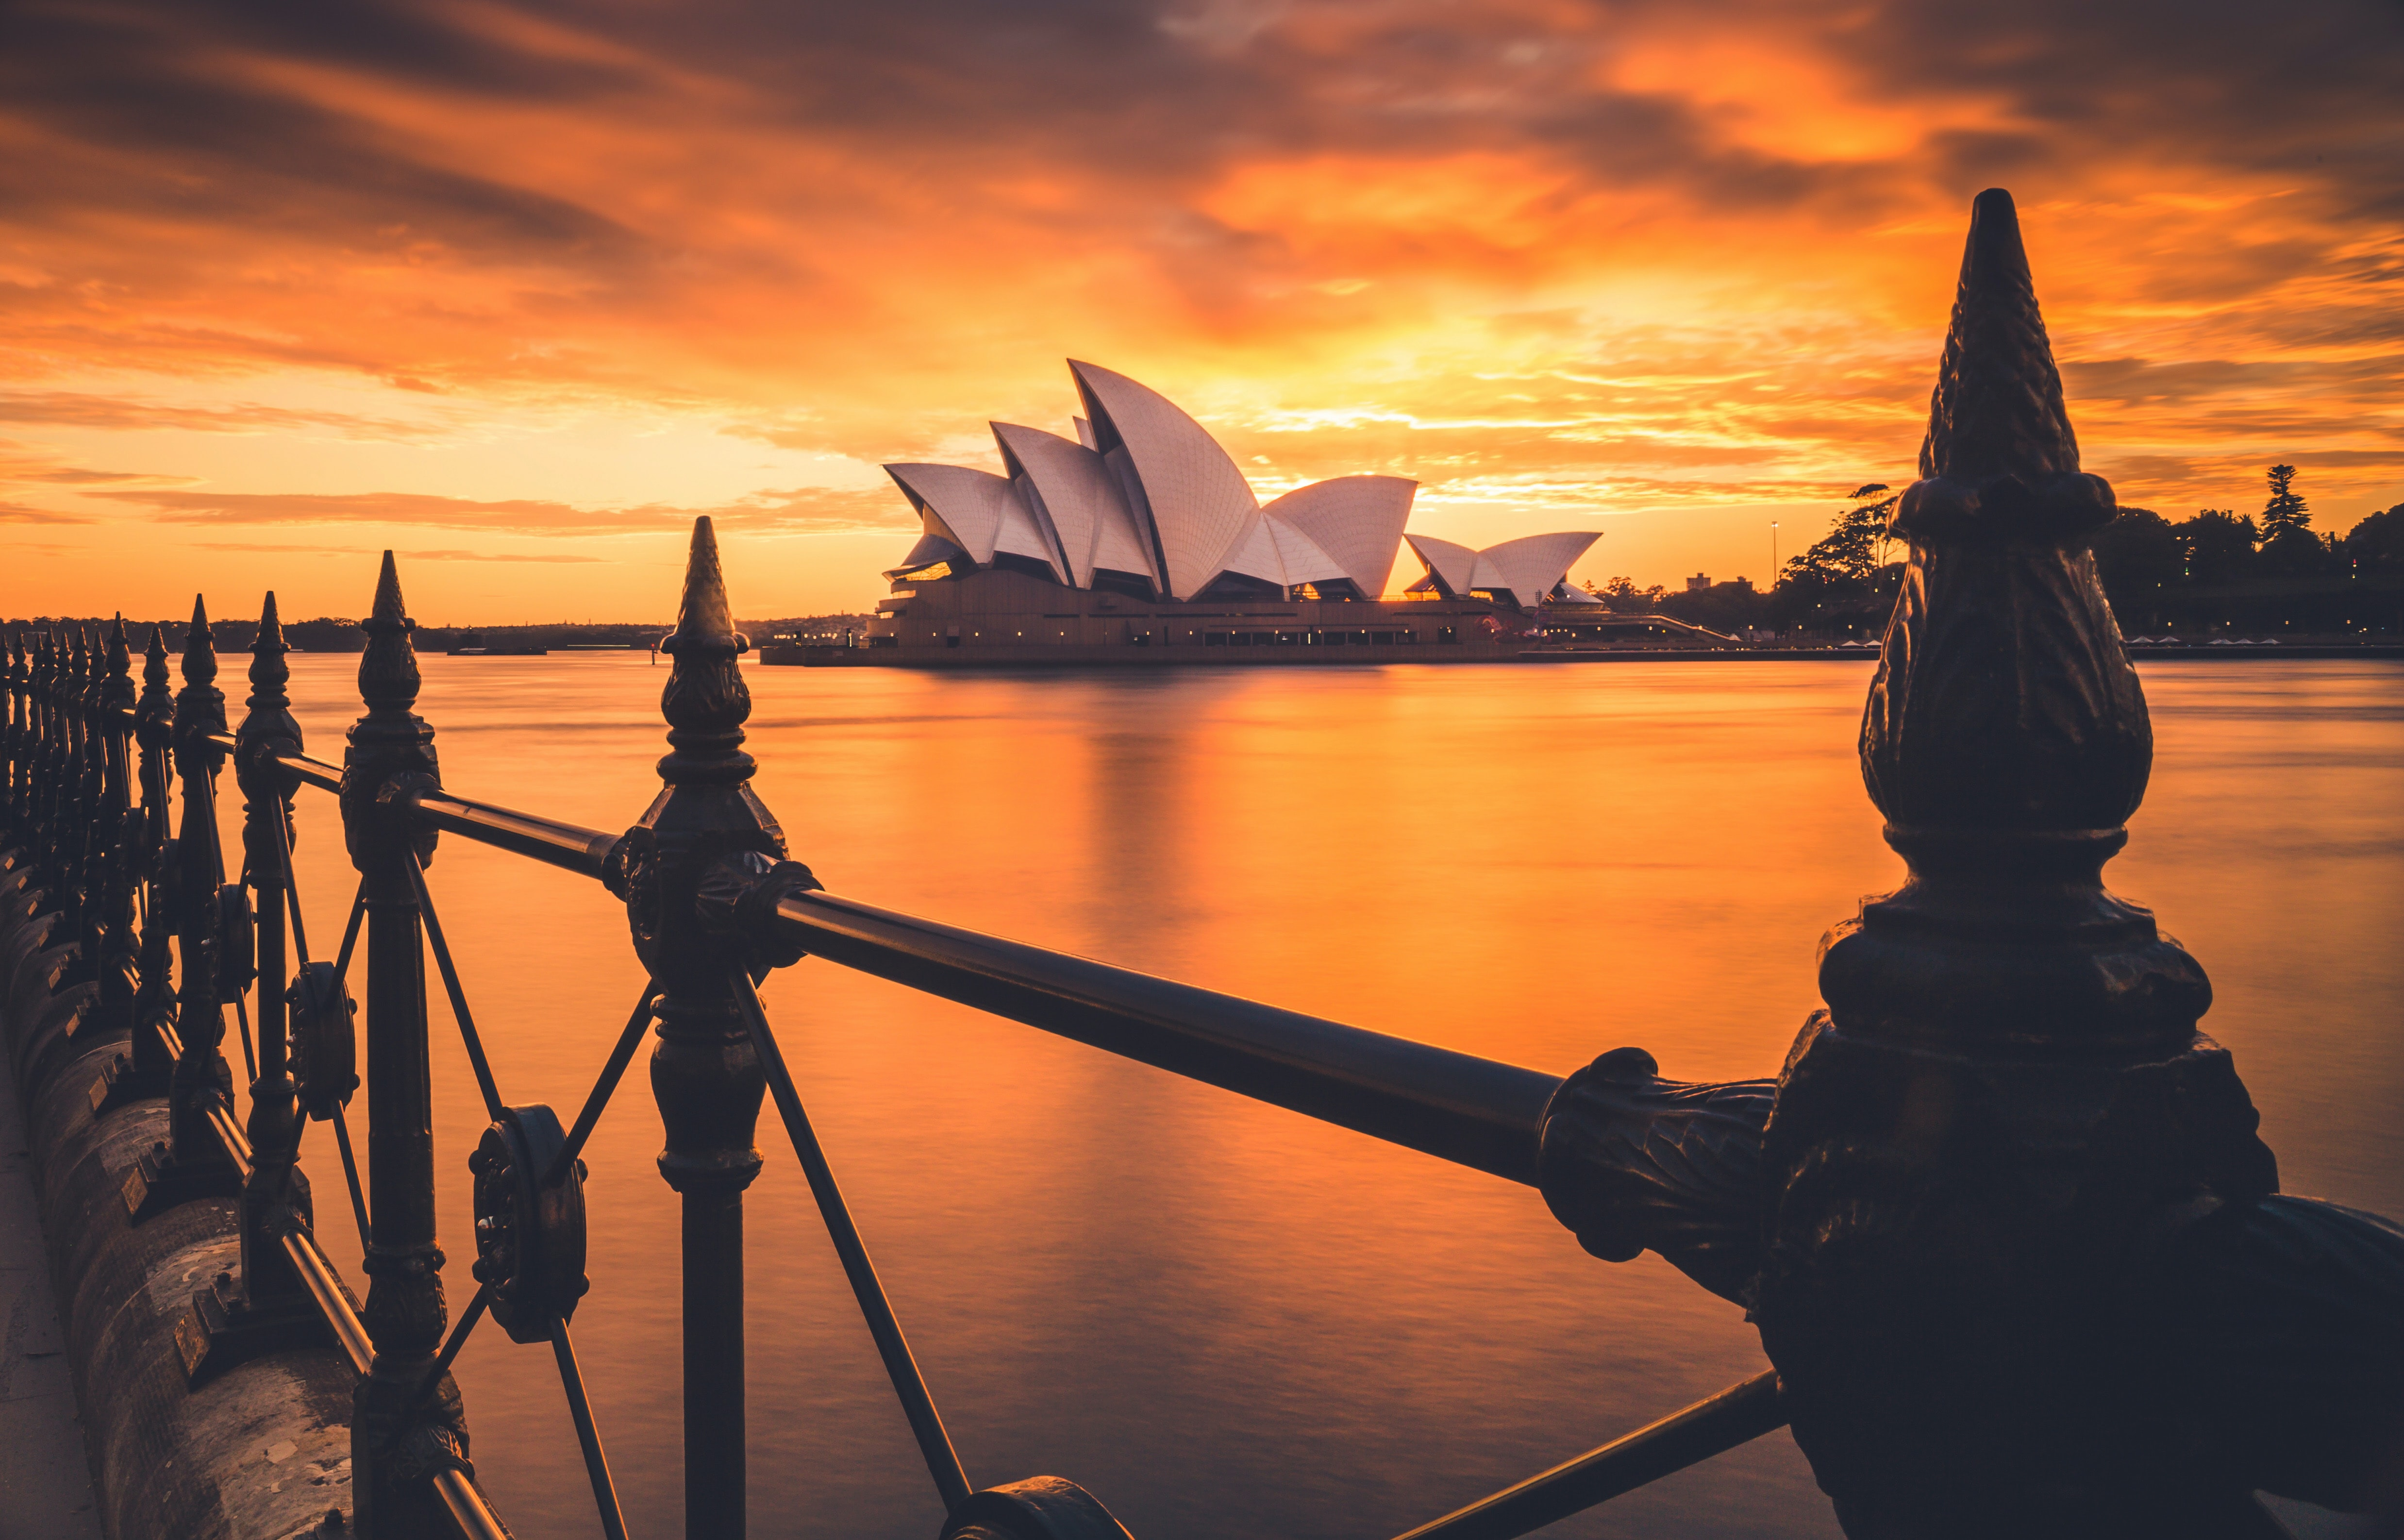 Railing in Sidney with an orange sky during sunset and an opera in the background